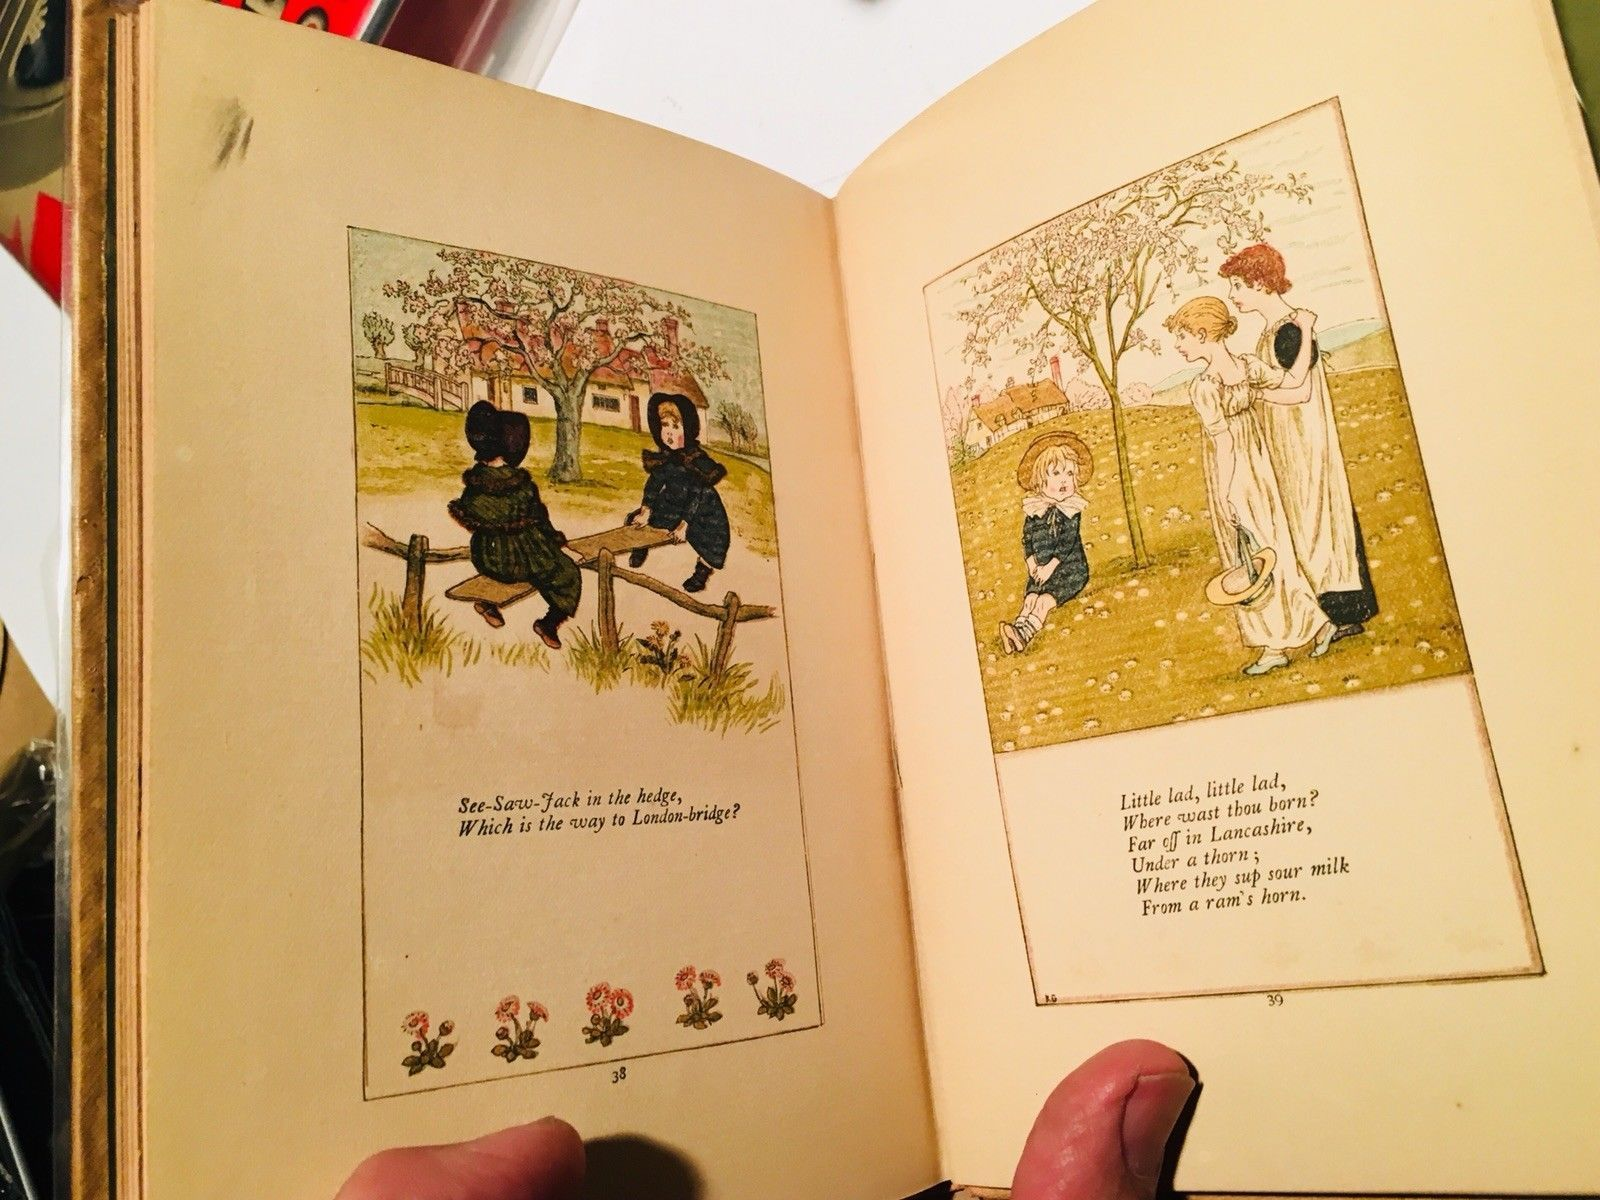 Mother Goose - Kate Greenaway 1881 1st/2nd Nice copy